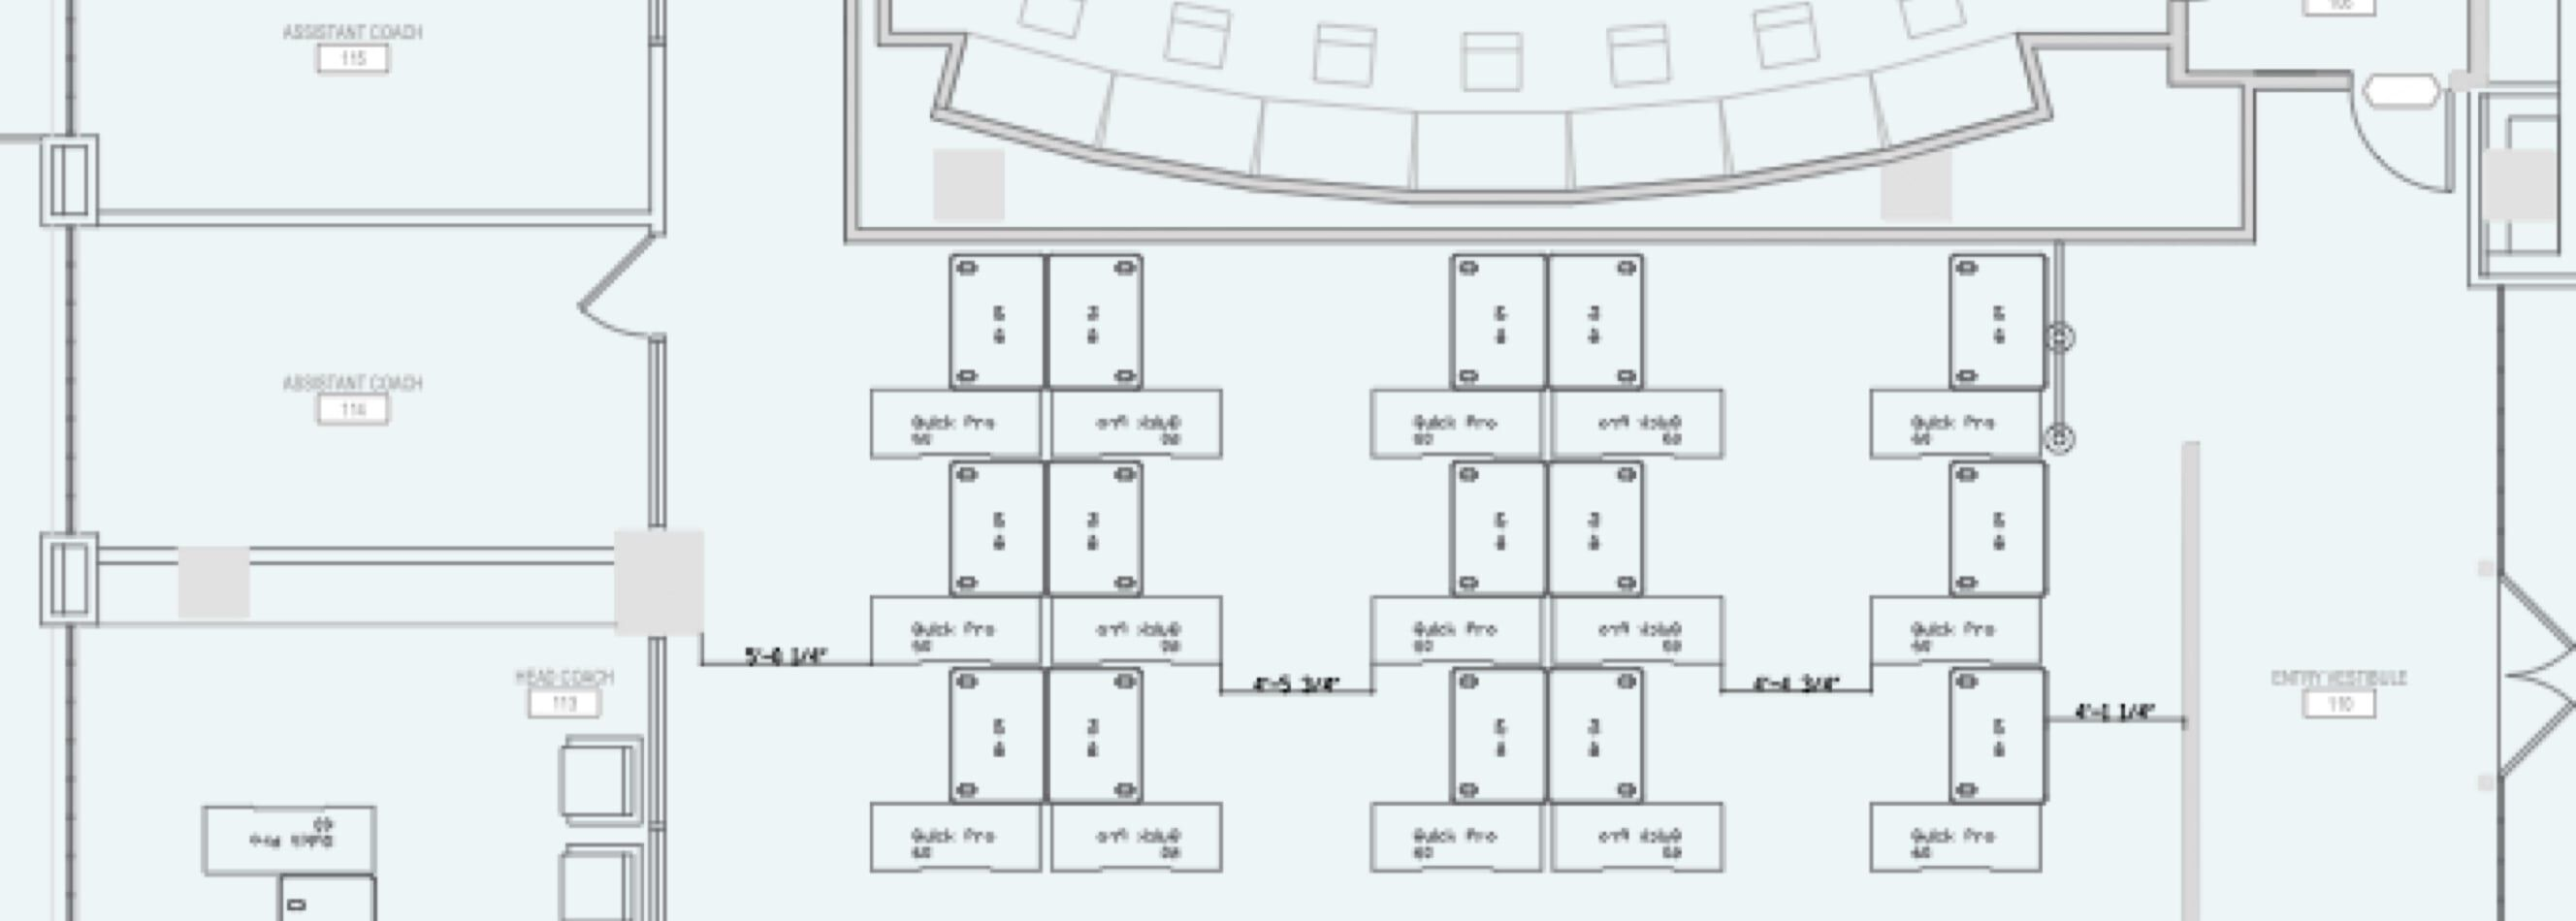 floor plan for dallas mavericks offices  image